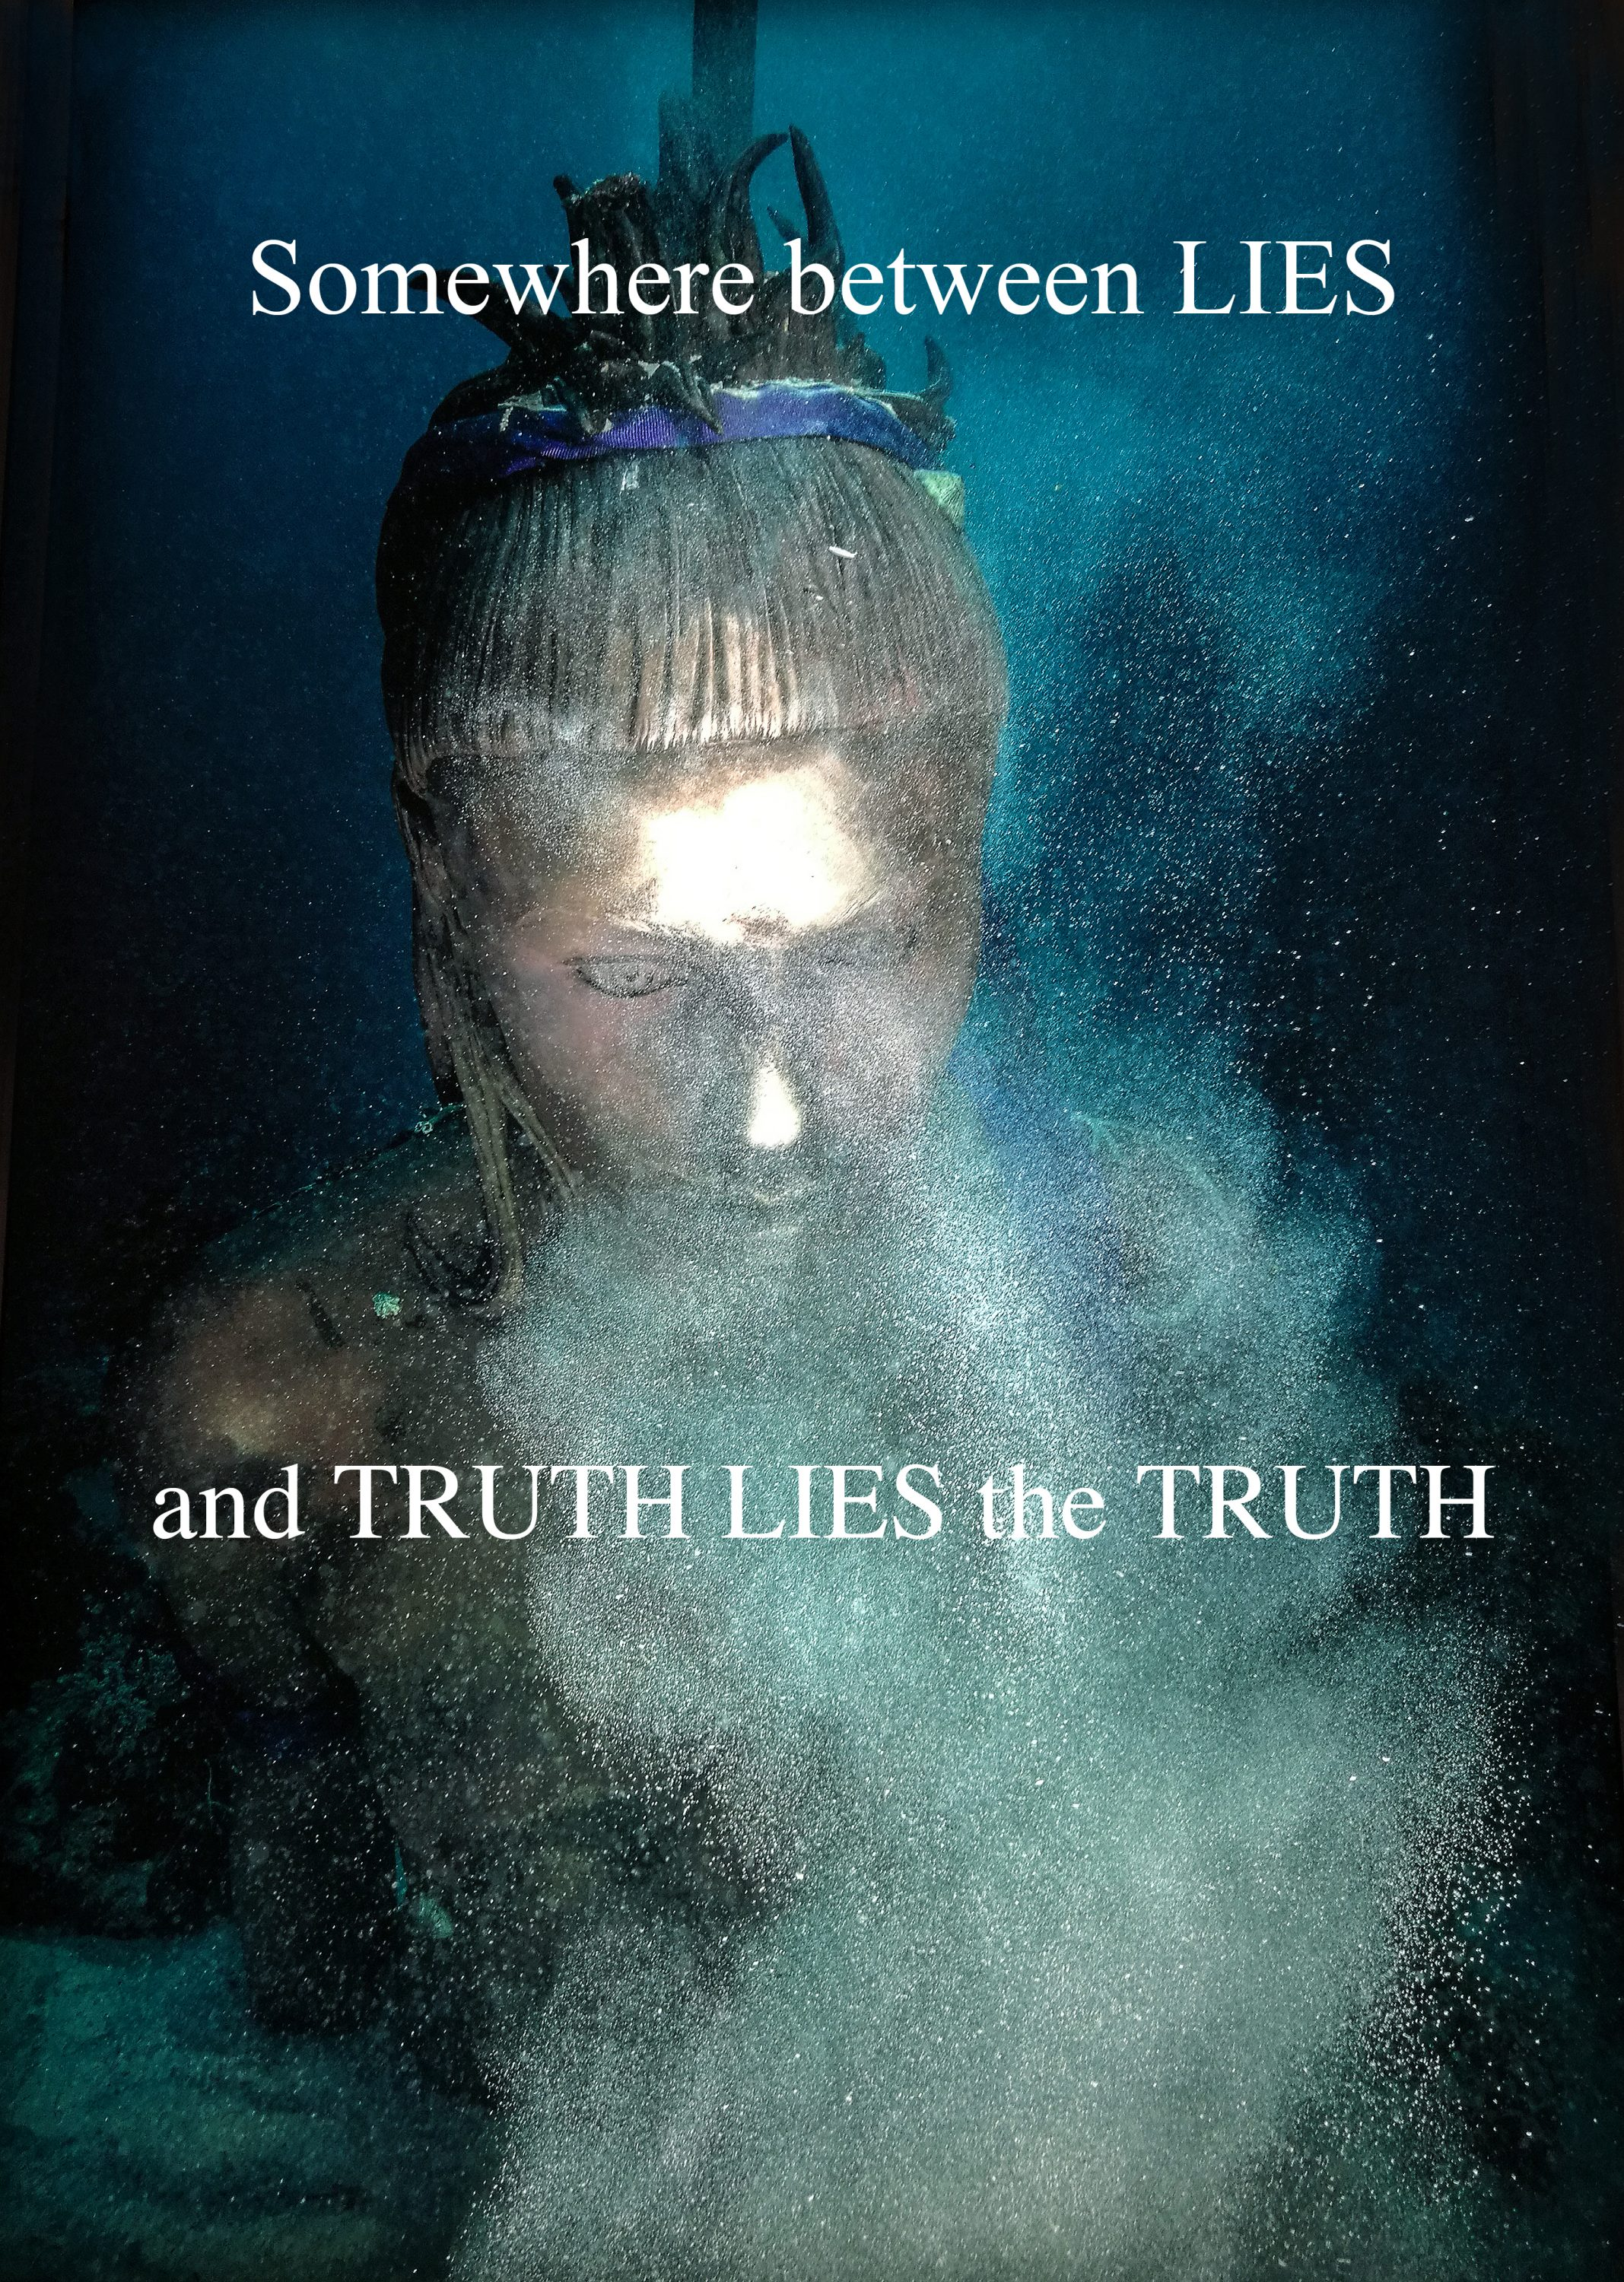 Somewhere between LIES and TRUTH LIES the TRUTH